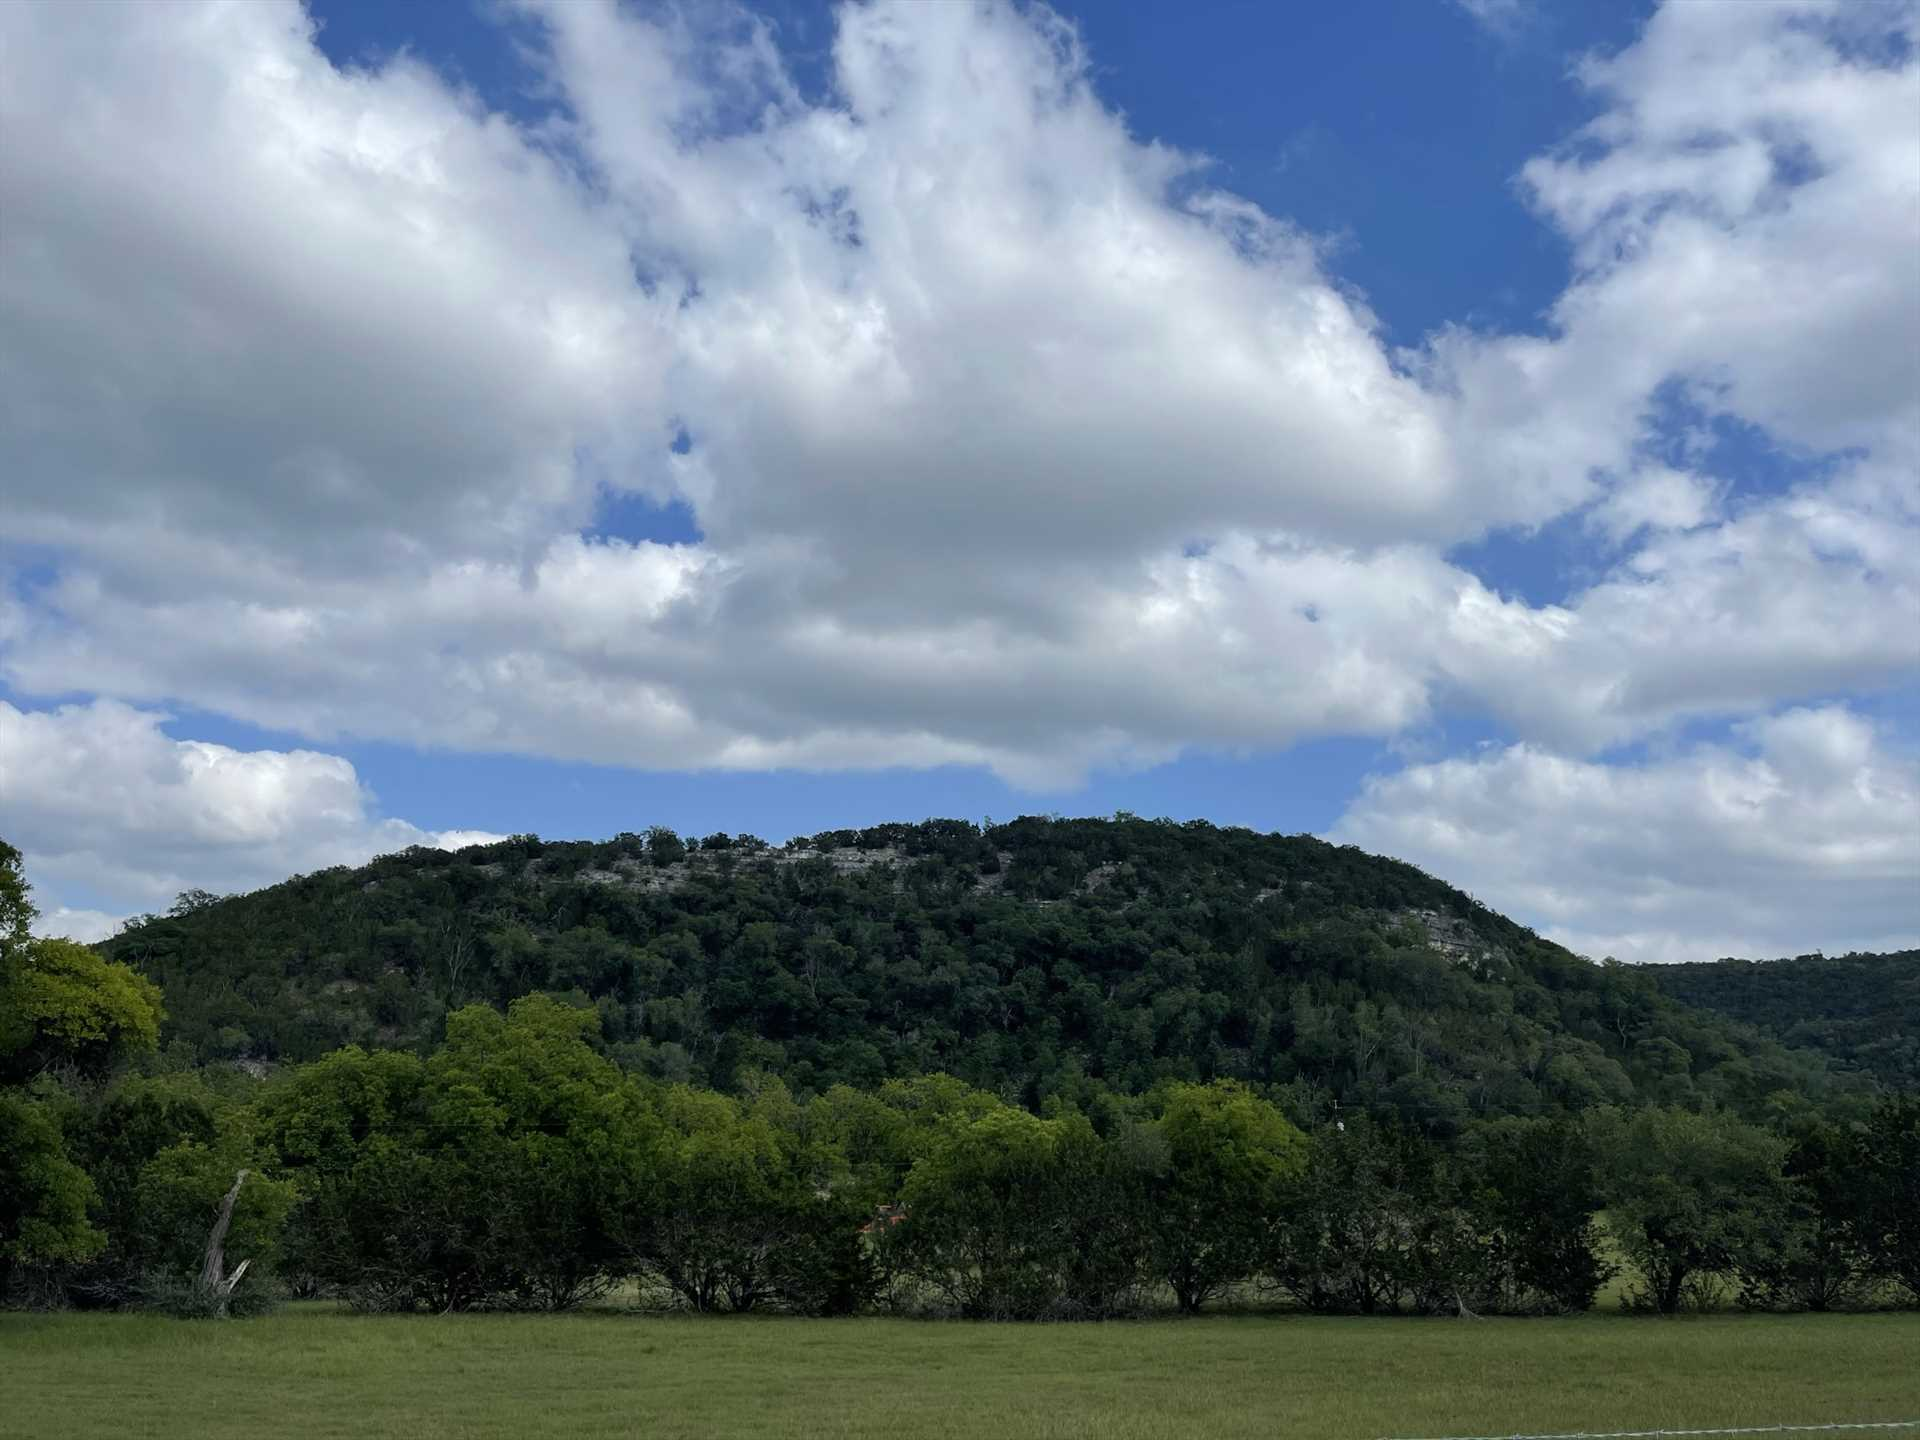 Mountains in Texas? We don't call it the Hill Country for nothing!